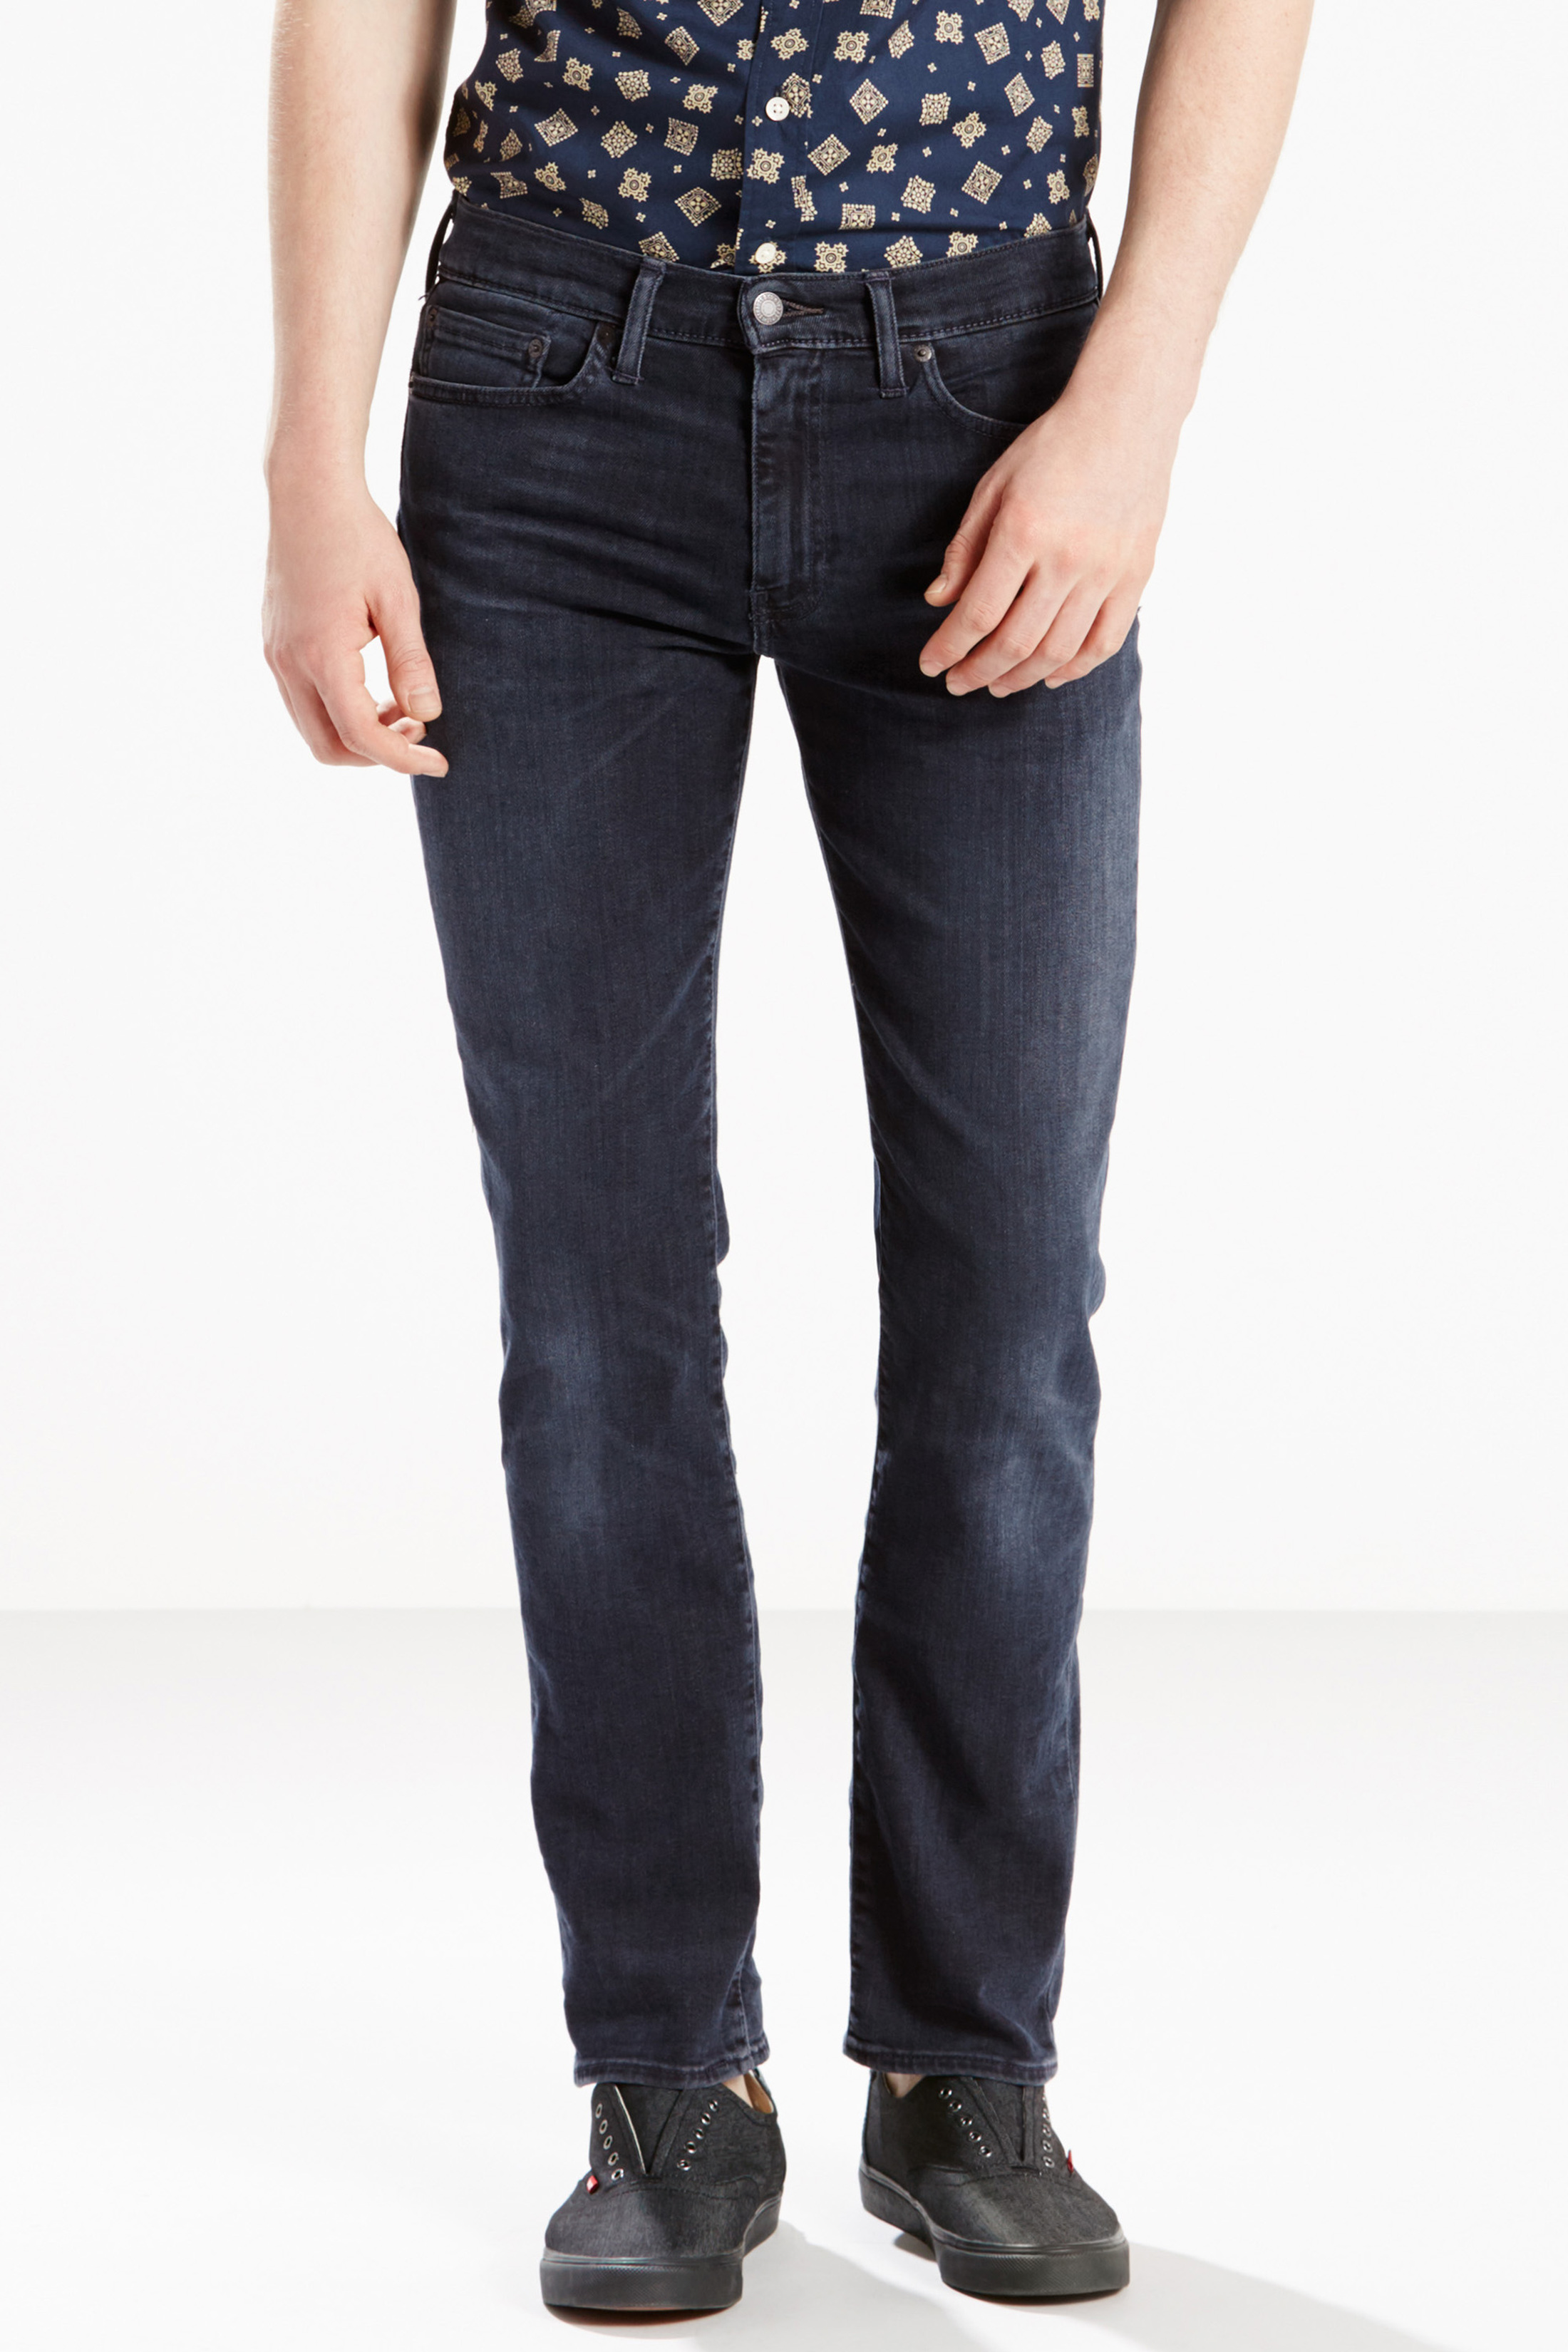 Levi's 511 Jeans Slim Fit Headed South 2090 foto 4